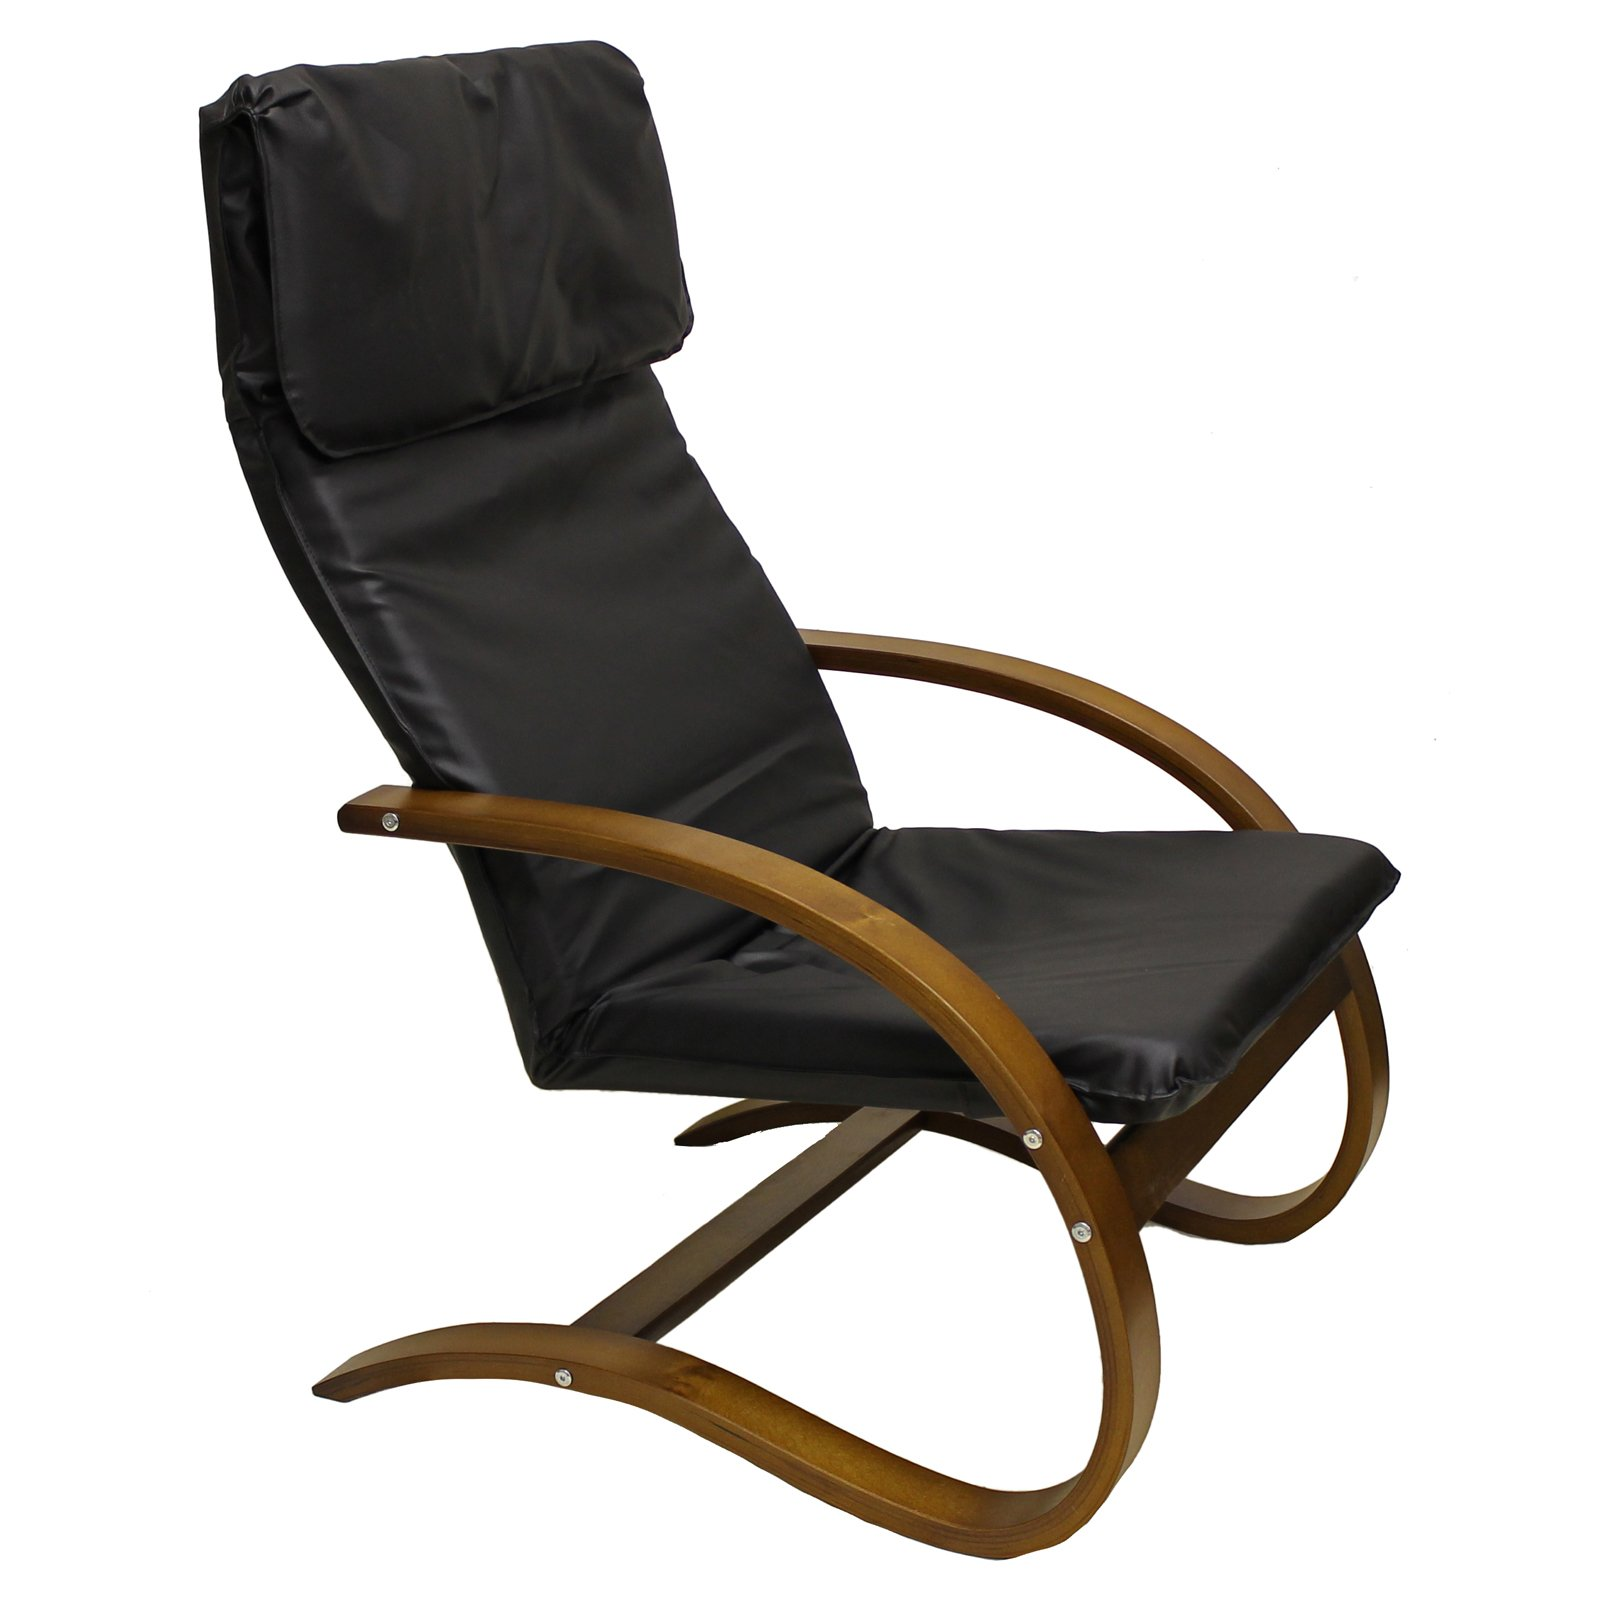 comfy chairs will that like modern designs chair you innovative and